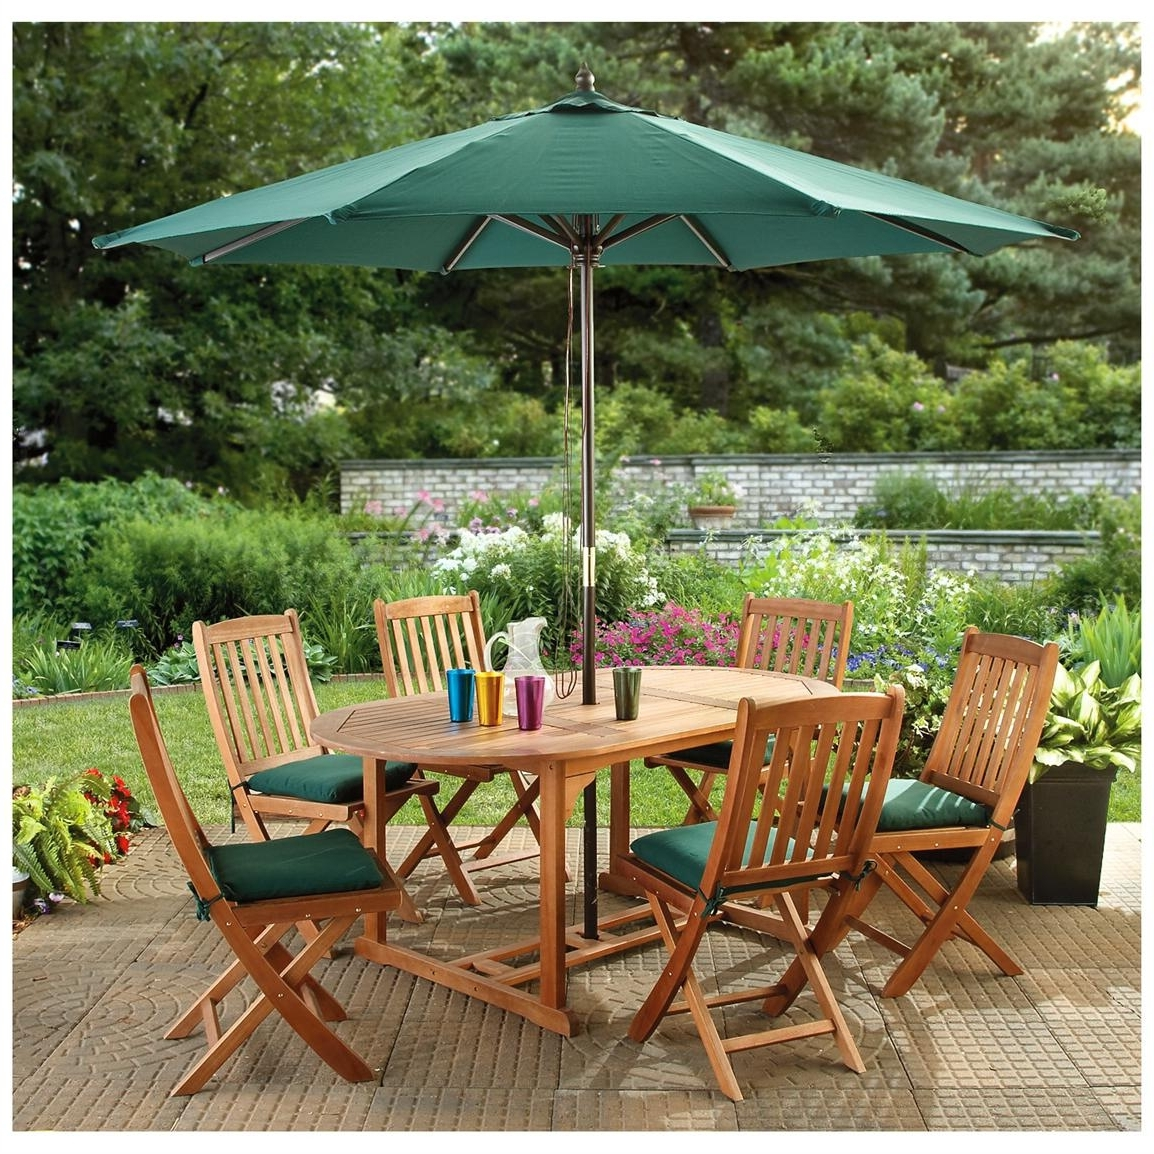 Best And Newest Small Patio Tables With Umbrellas Within Patio: Amazing Small Patio Table With Umbrella Outdoor Furniture (View 1 of 20)